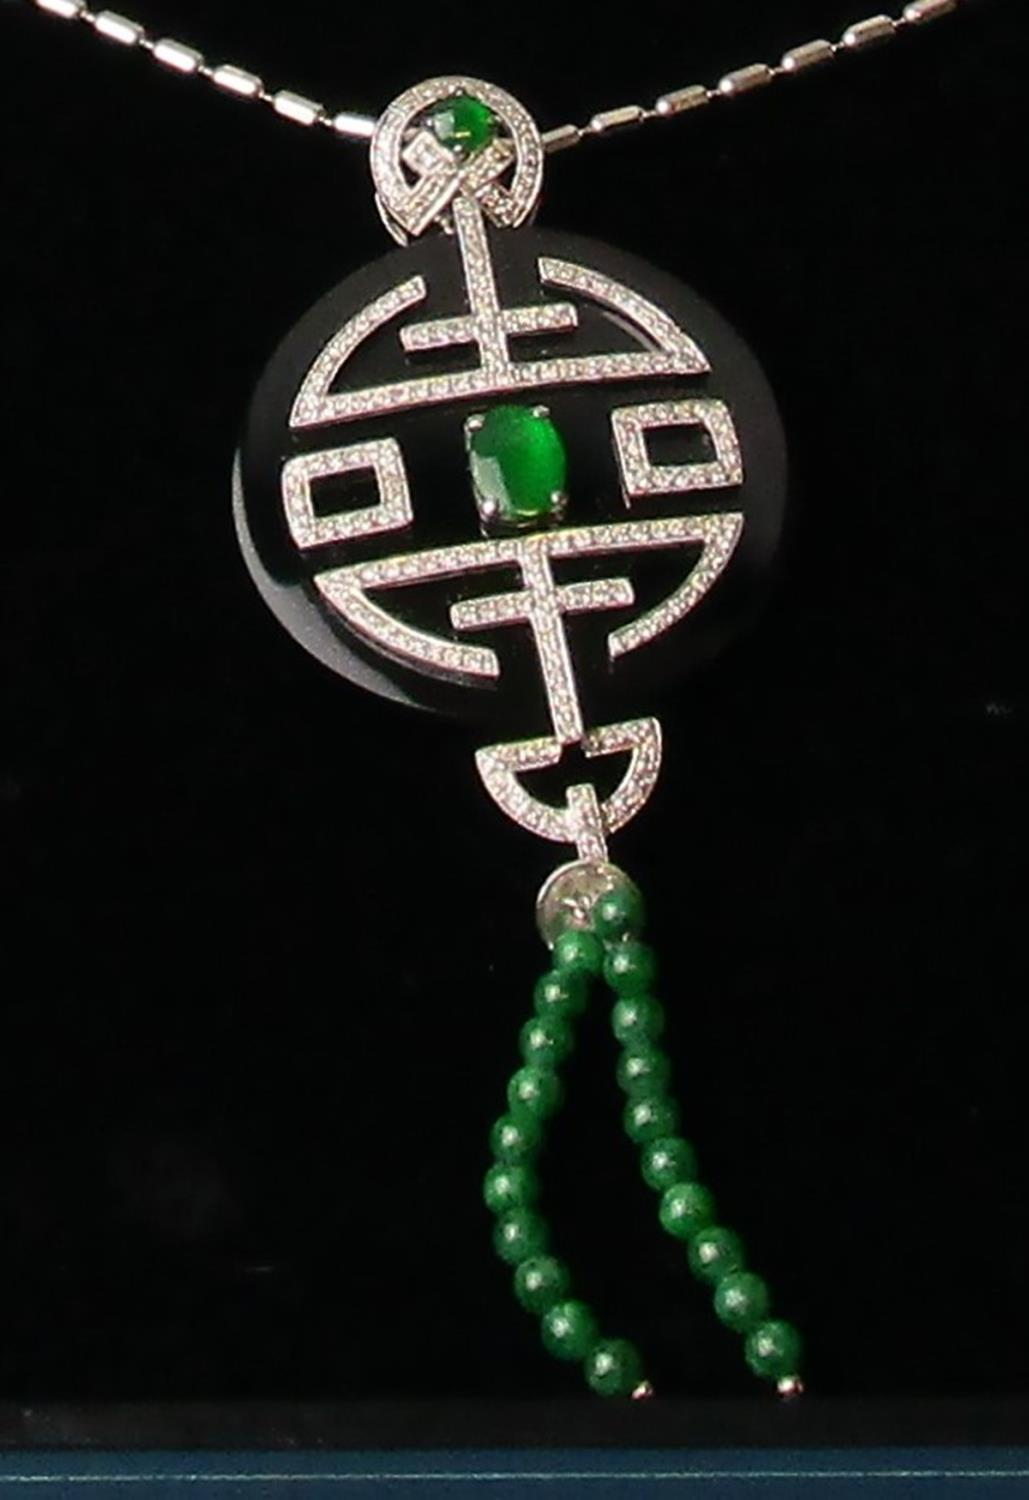 Fine 18ct white gold onyx, diamond & jade pendant on chain - Image 2 of 4